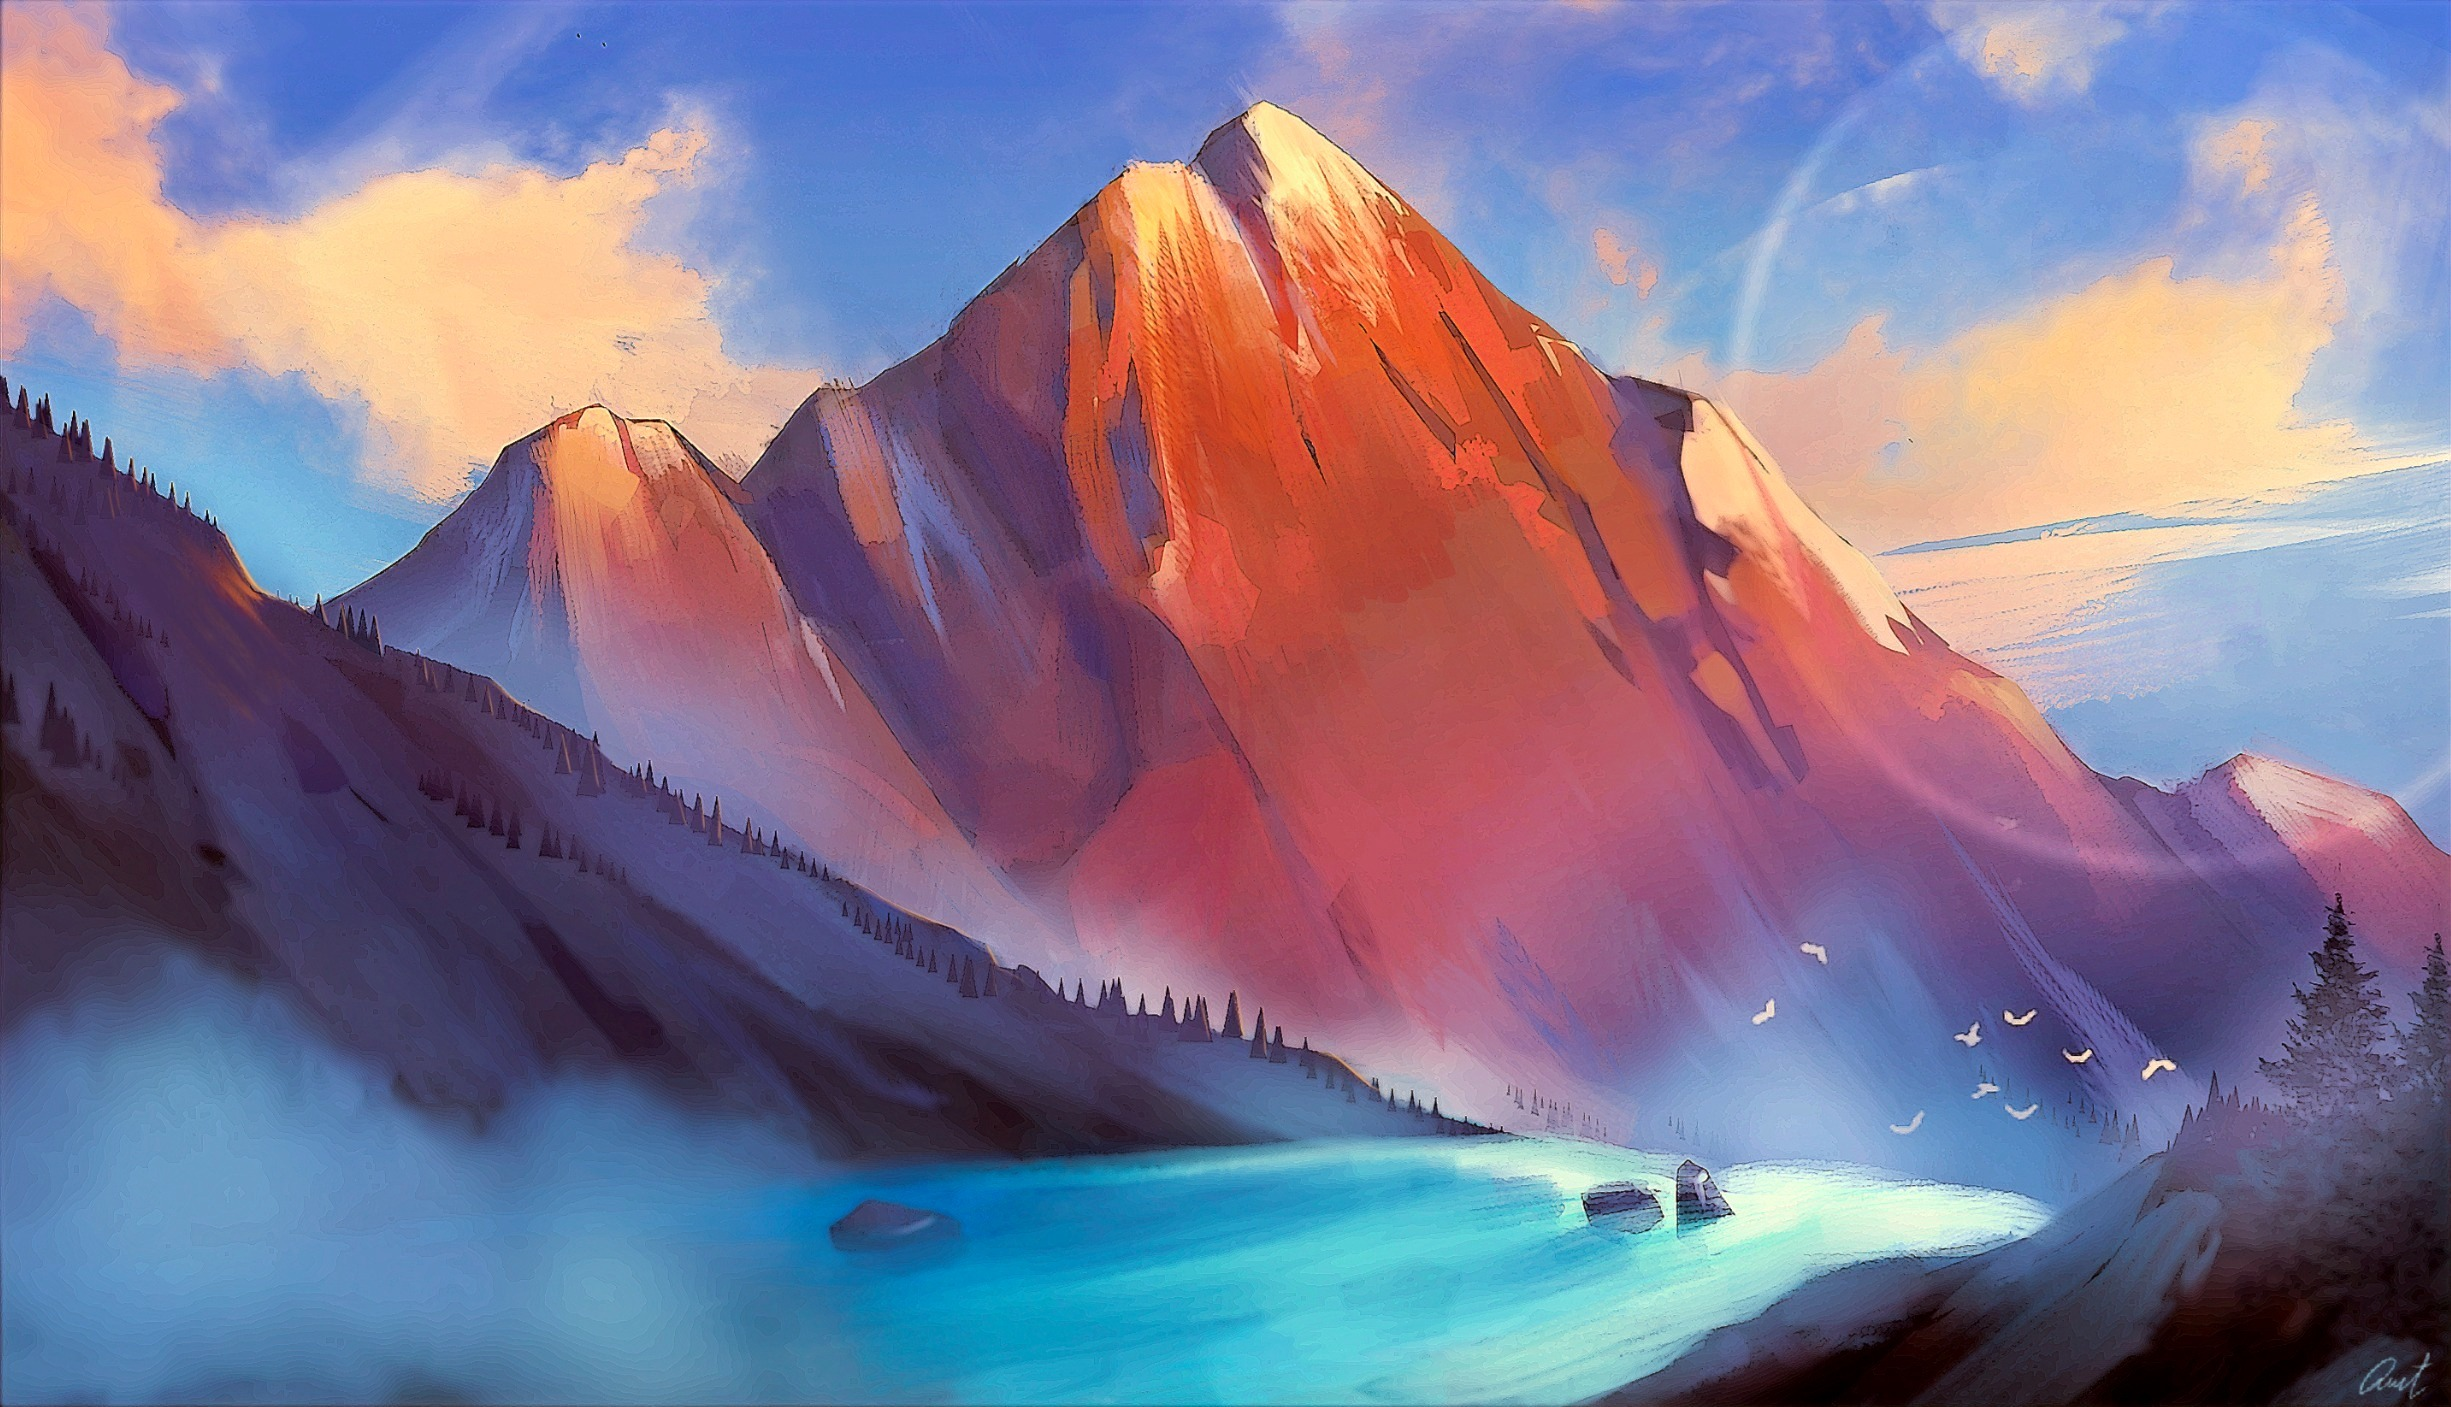 Sketching Snow Mountain